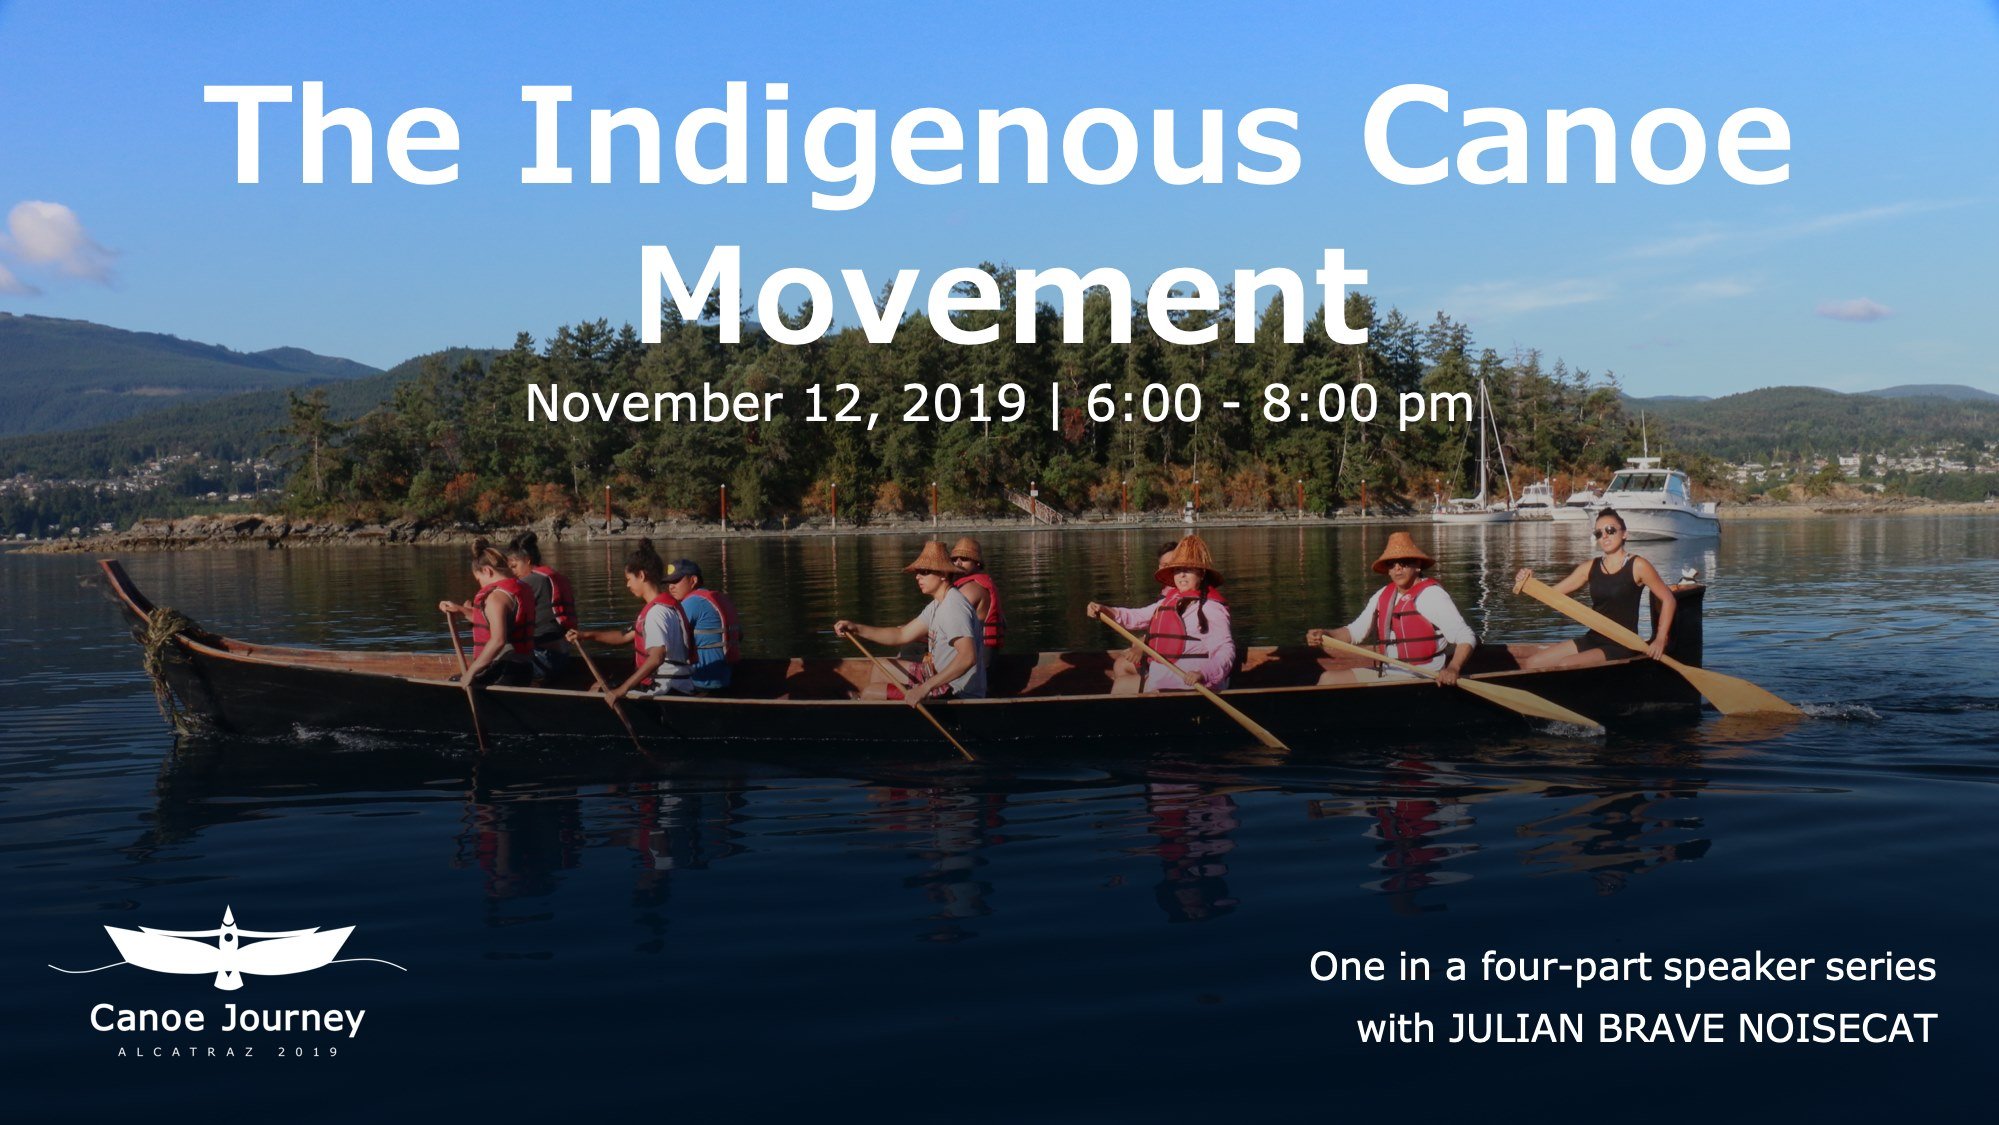 <p>The Indigenous Canoe Movement</p>